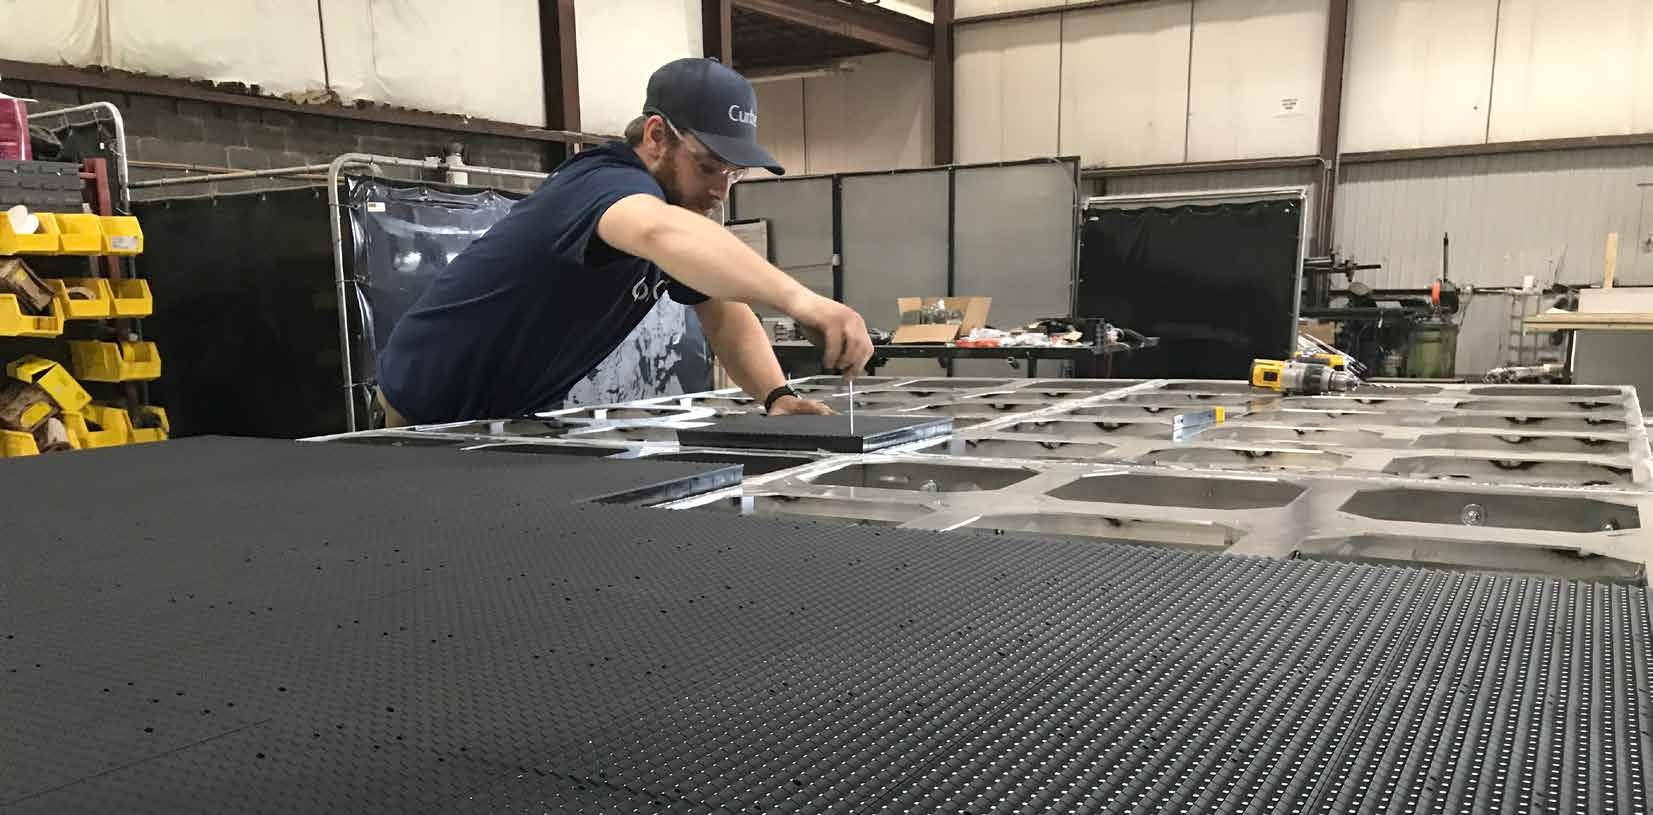 Curbex Employee building a LED display